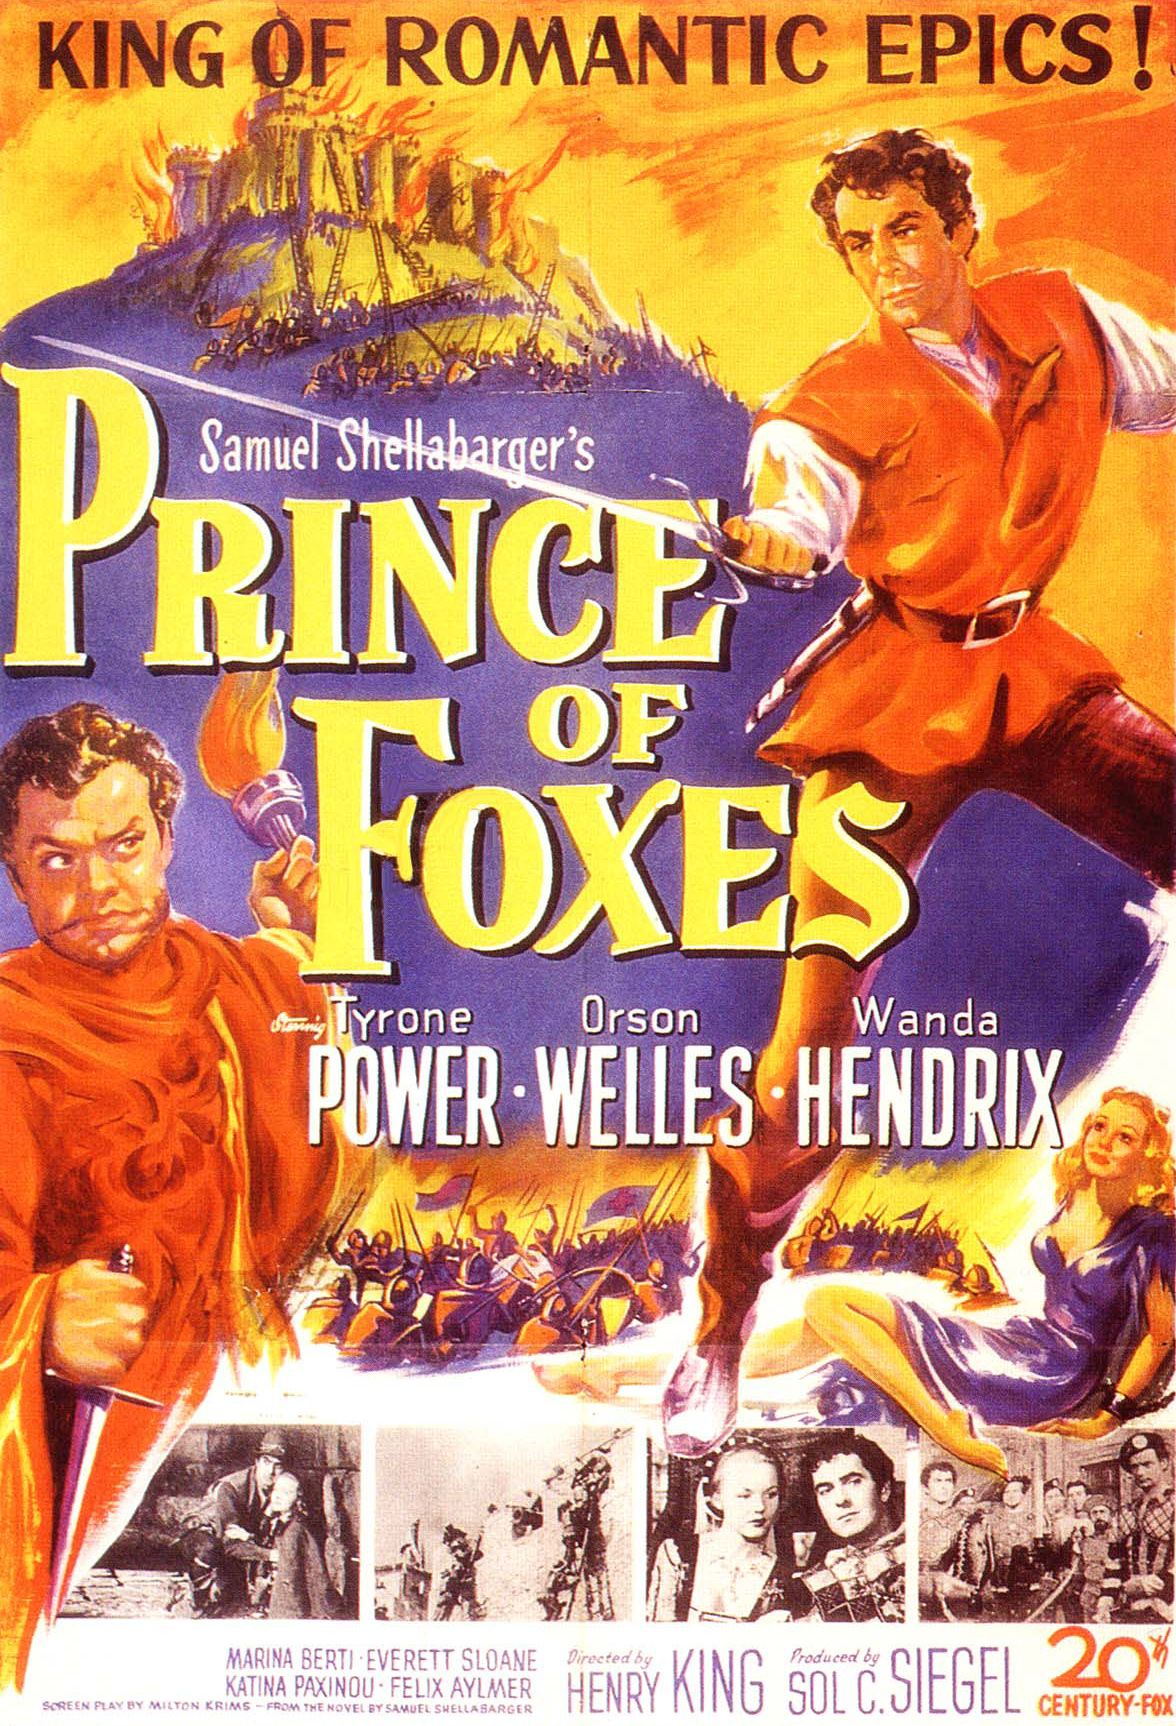 Prince of foxes Tyrone Power vintage movie poster print